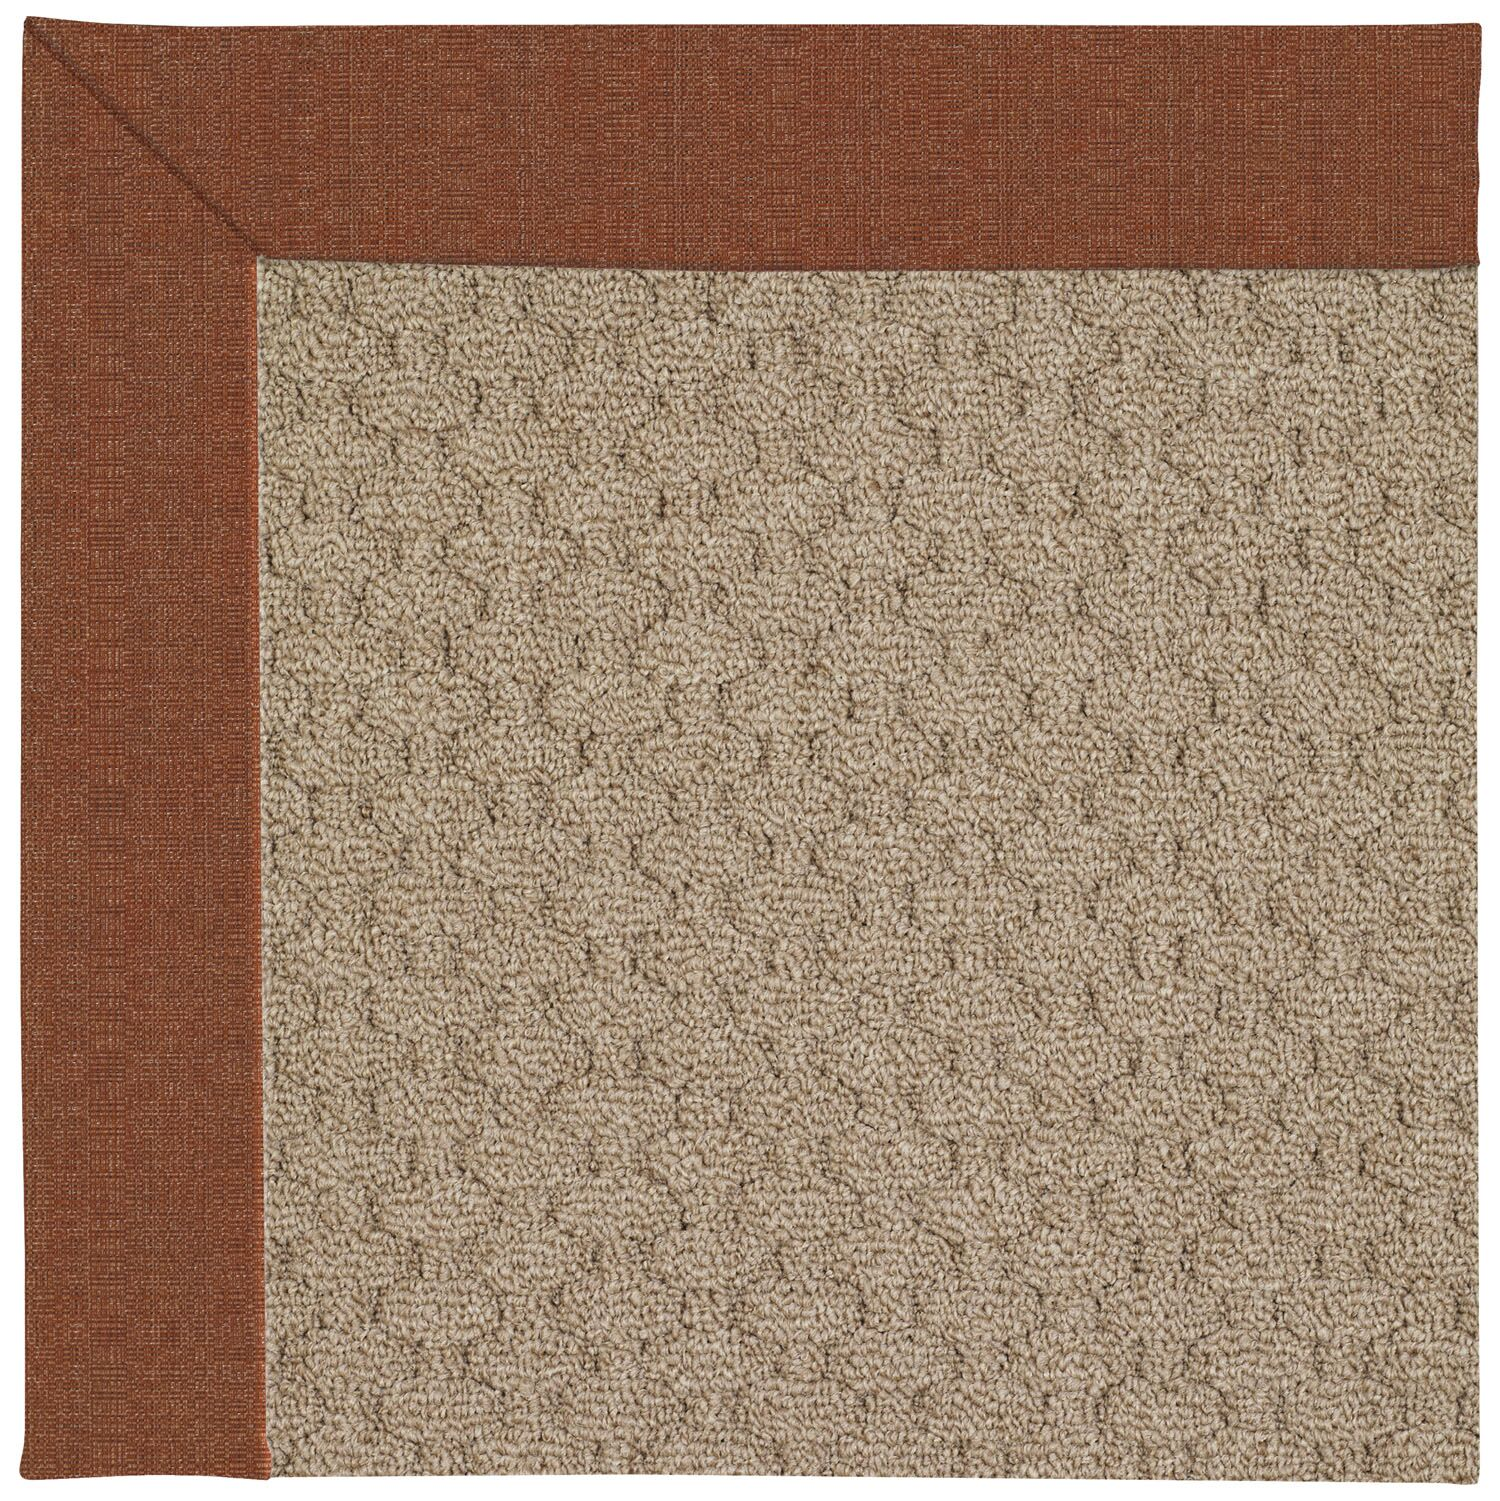 Lisle Machine Tufted Dried Chilis/Brown Indoor/Outdoor Area Rug Rug Size: Rectangle 9' x 12'